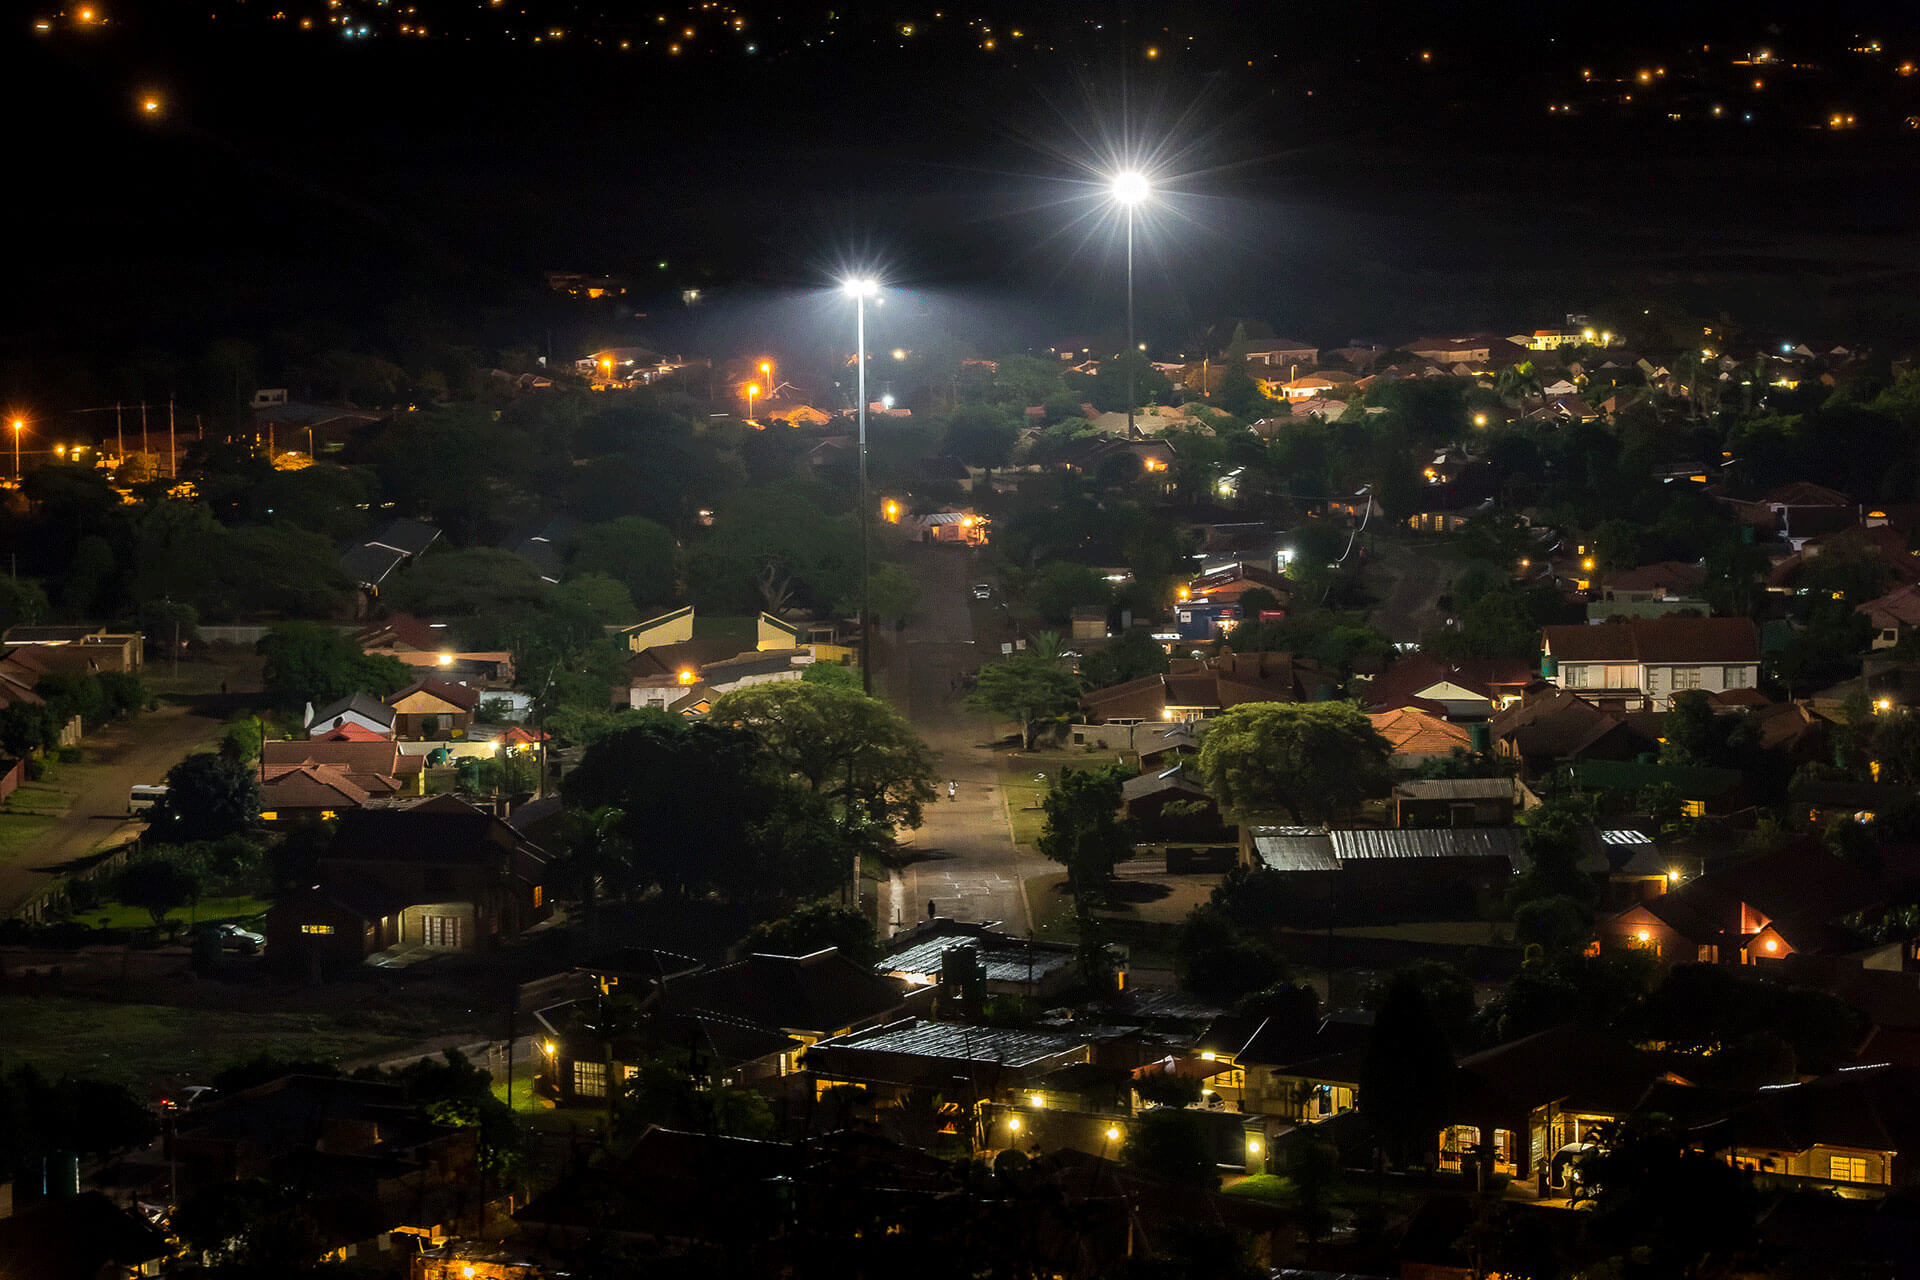 OMNIstar on 40m high masts reduces energy savings for Tzaneen